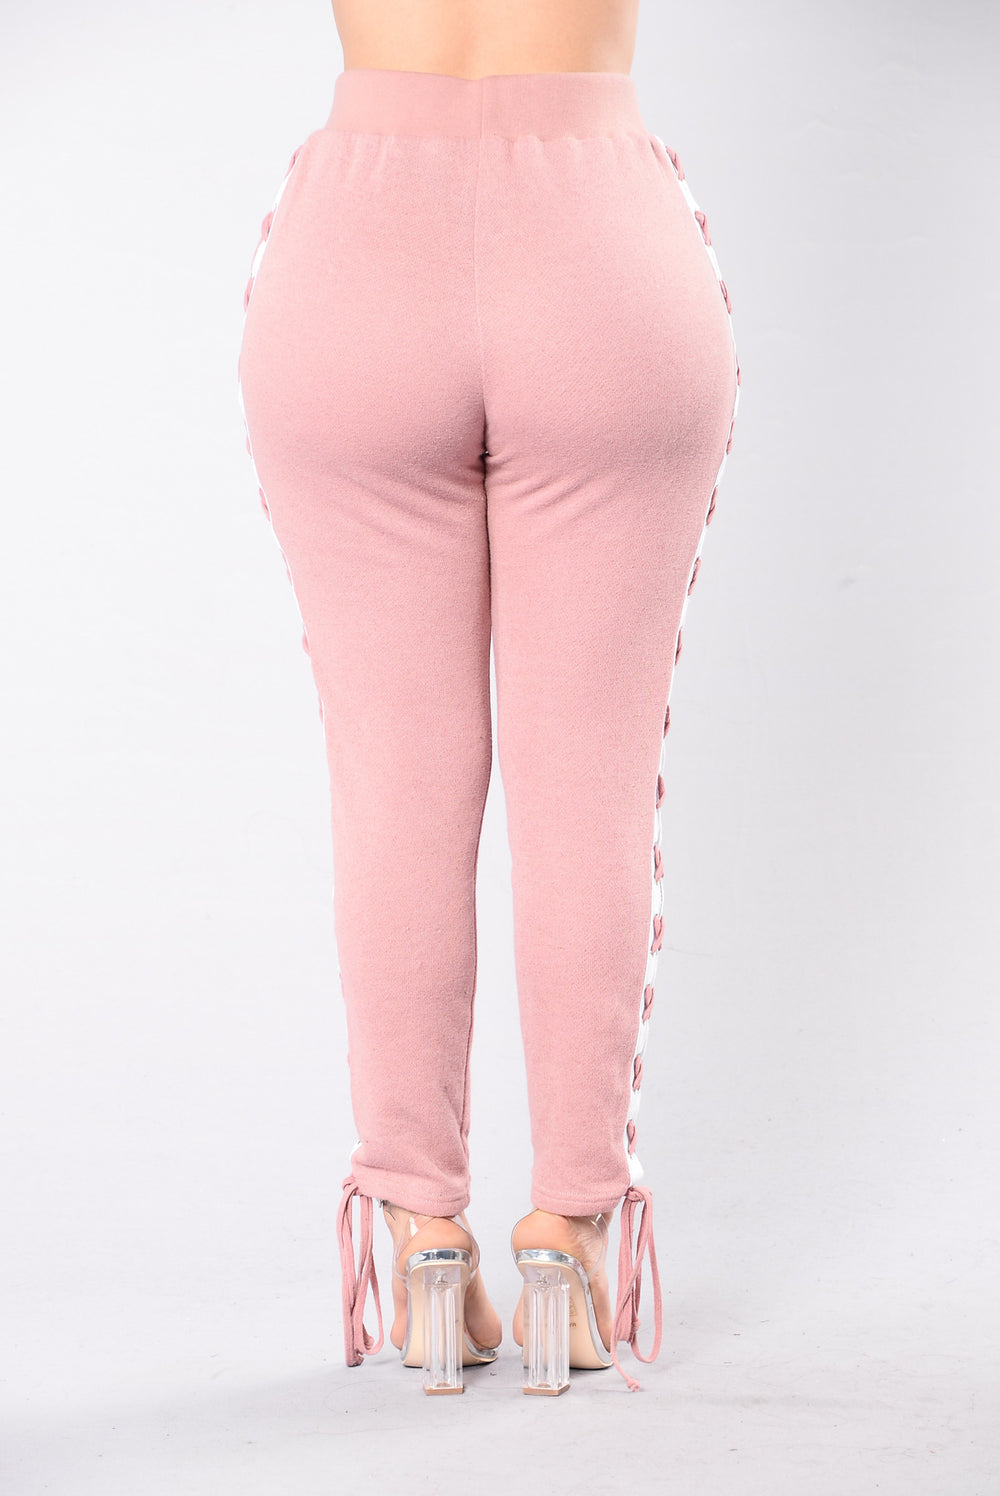 Break A Sweat Pants - Pink/White